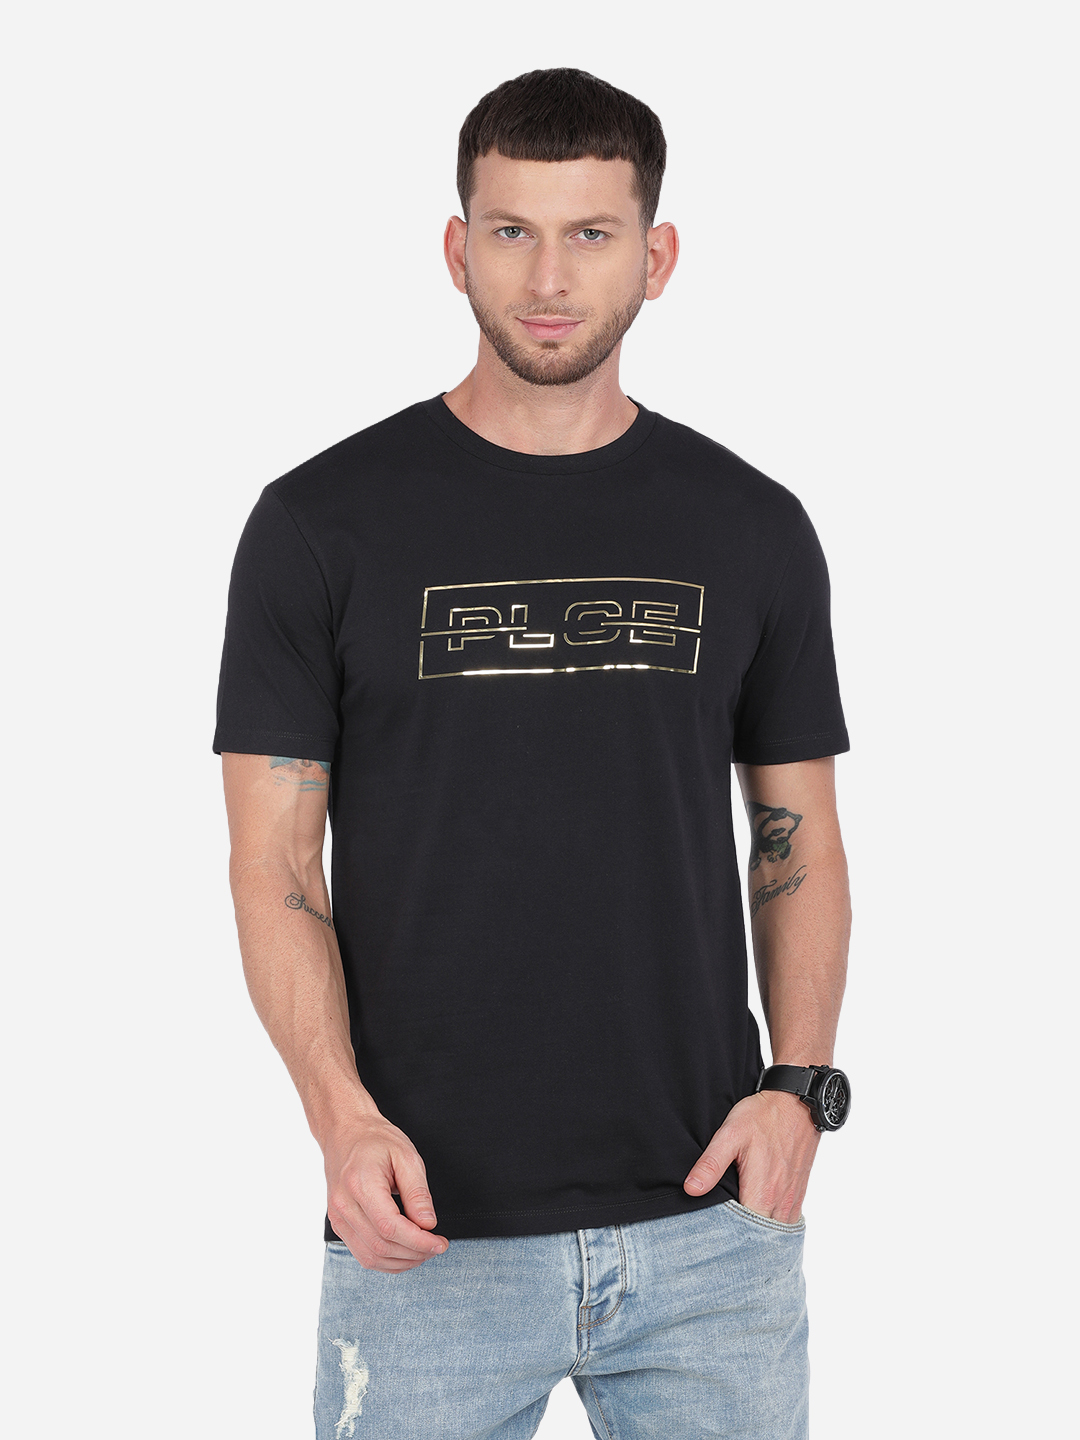 883 Police | 883 Police Blizzard India T-shirt